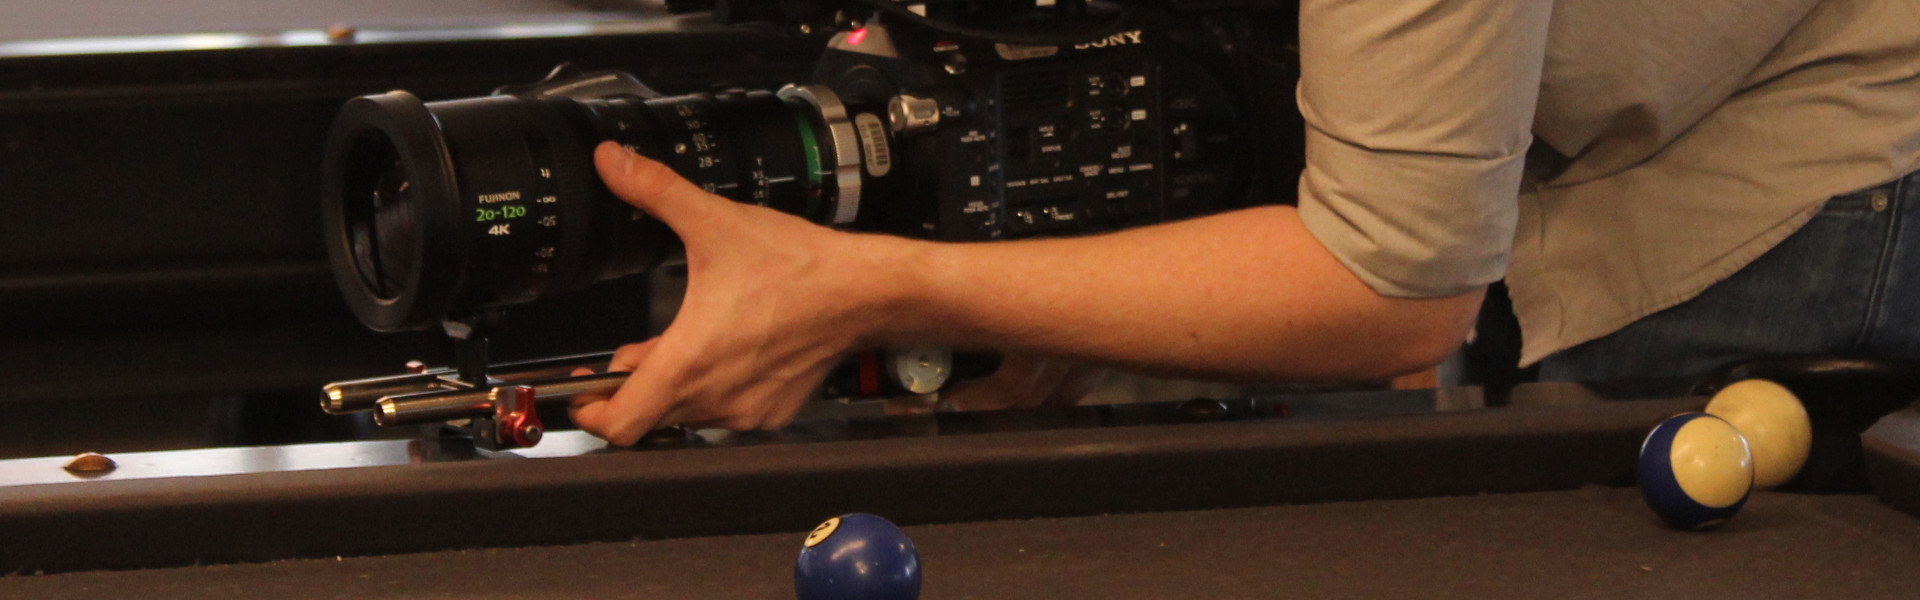 Header image for article Behind the Lens: Fujinon Cabrio 20-120mm